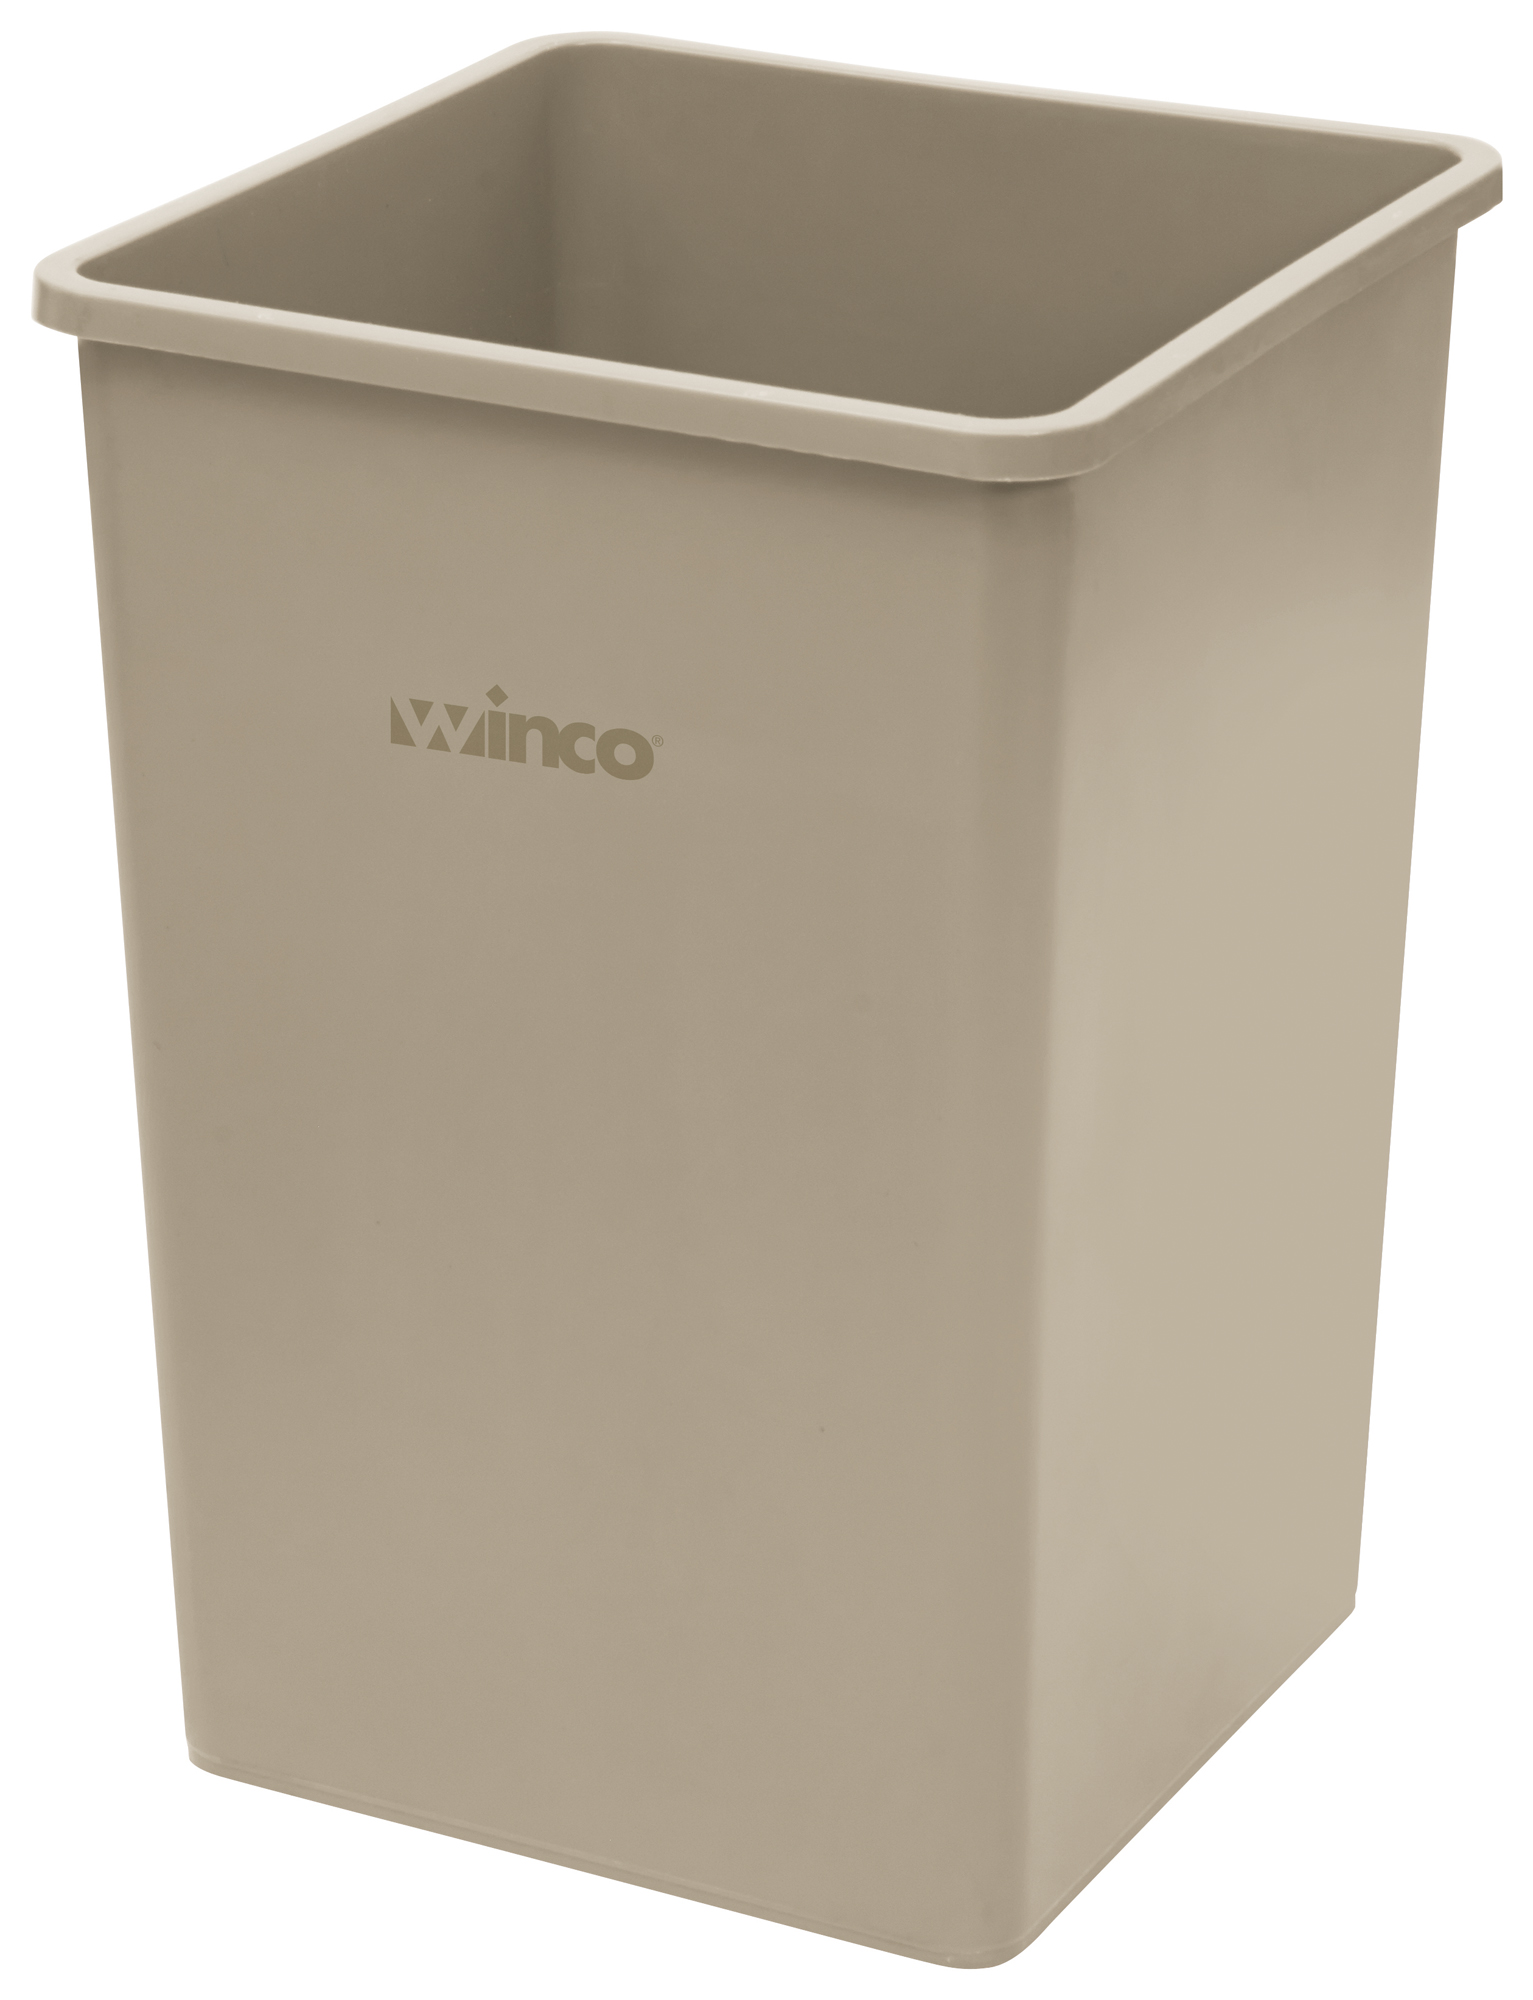 Winco PTCS-35BE trash cans & accessories